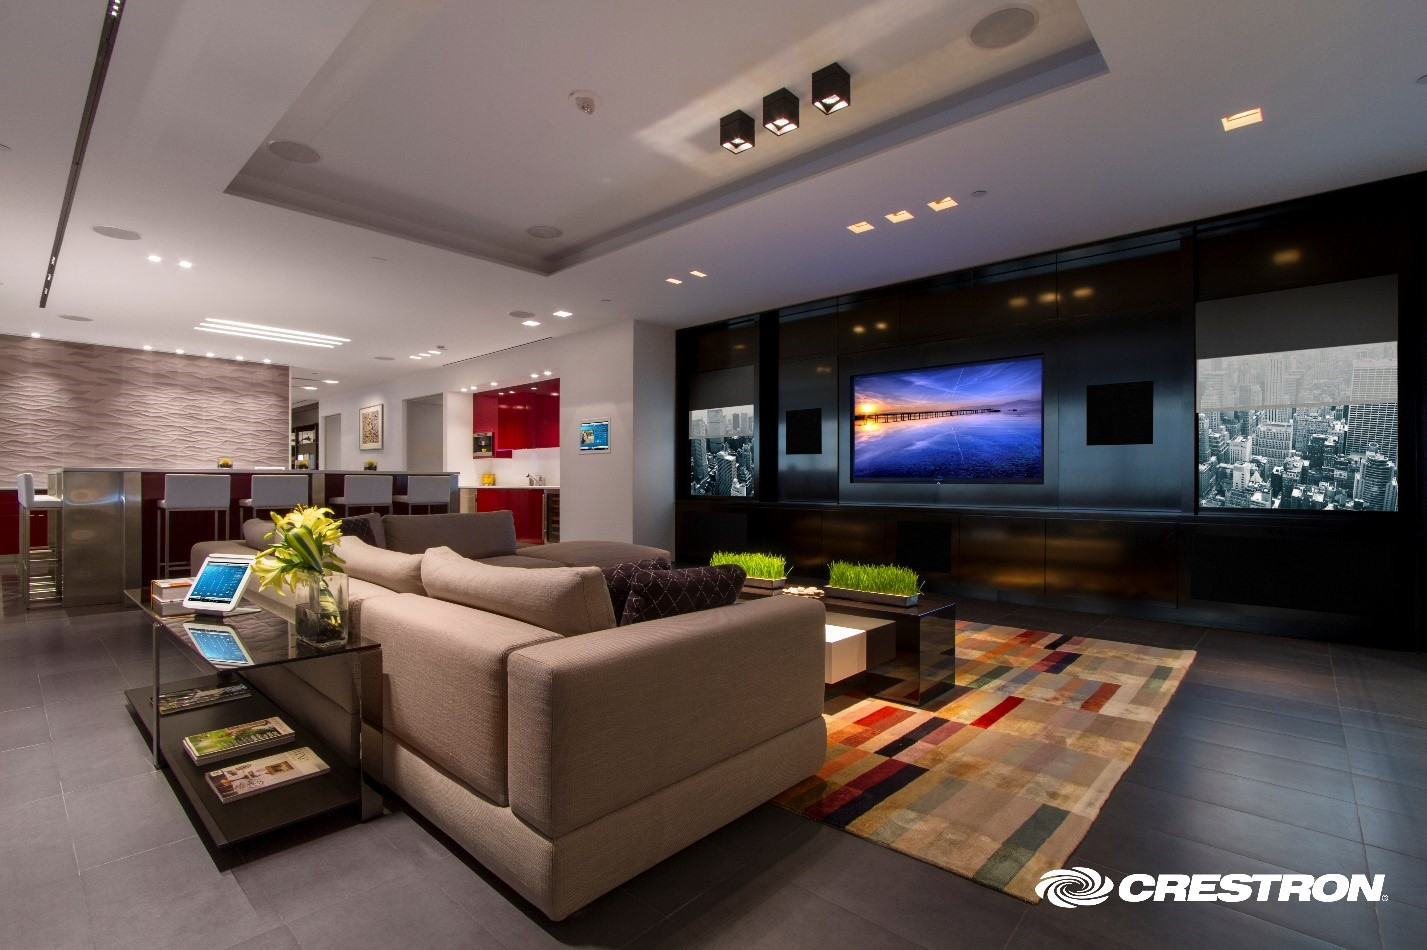 Innovative Lifestyles Enhances Your Home's Soundtracks with Superior Audio Distribution Systems